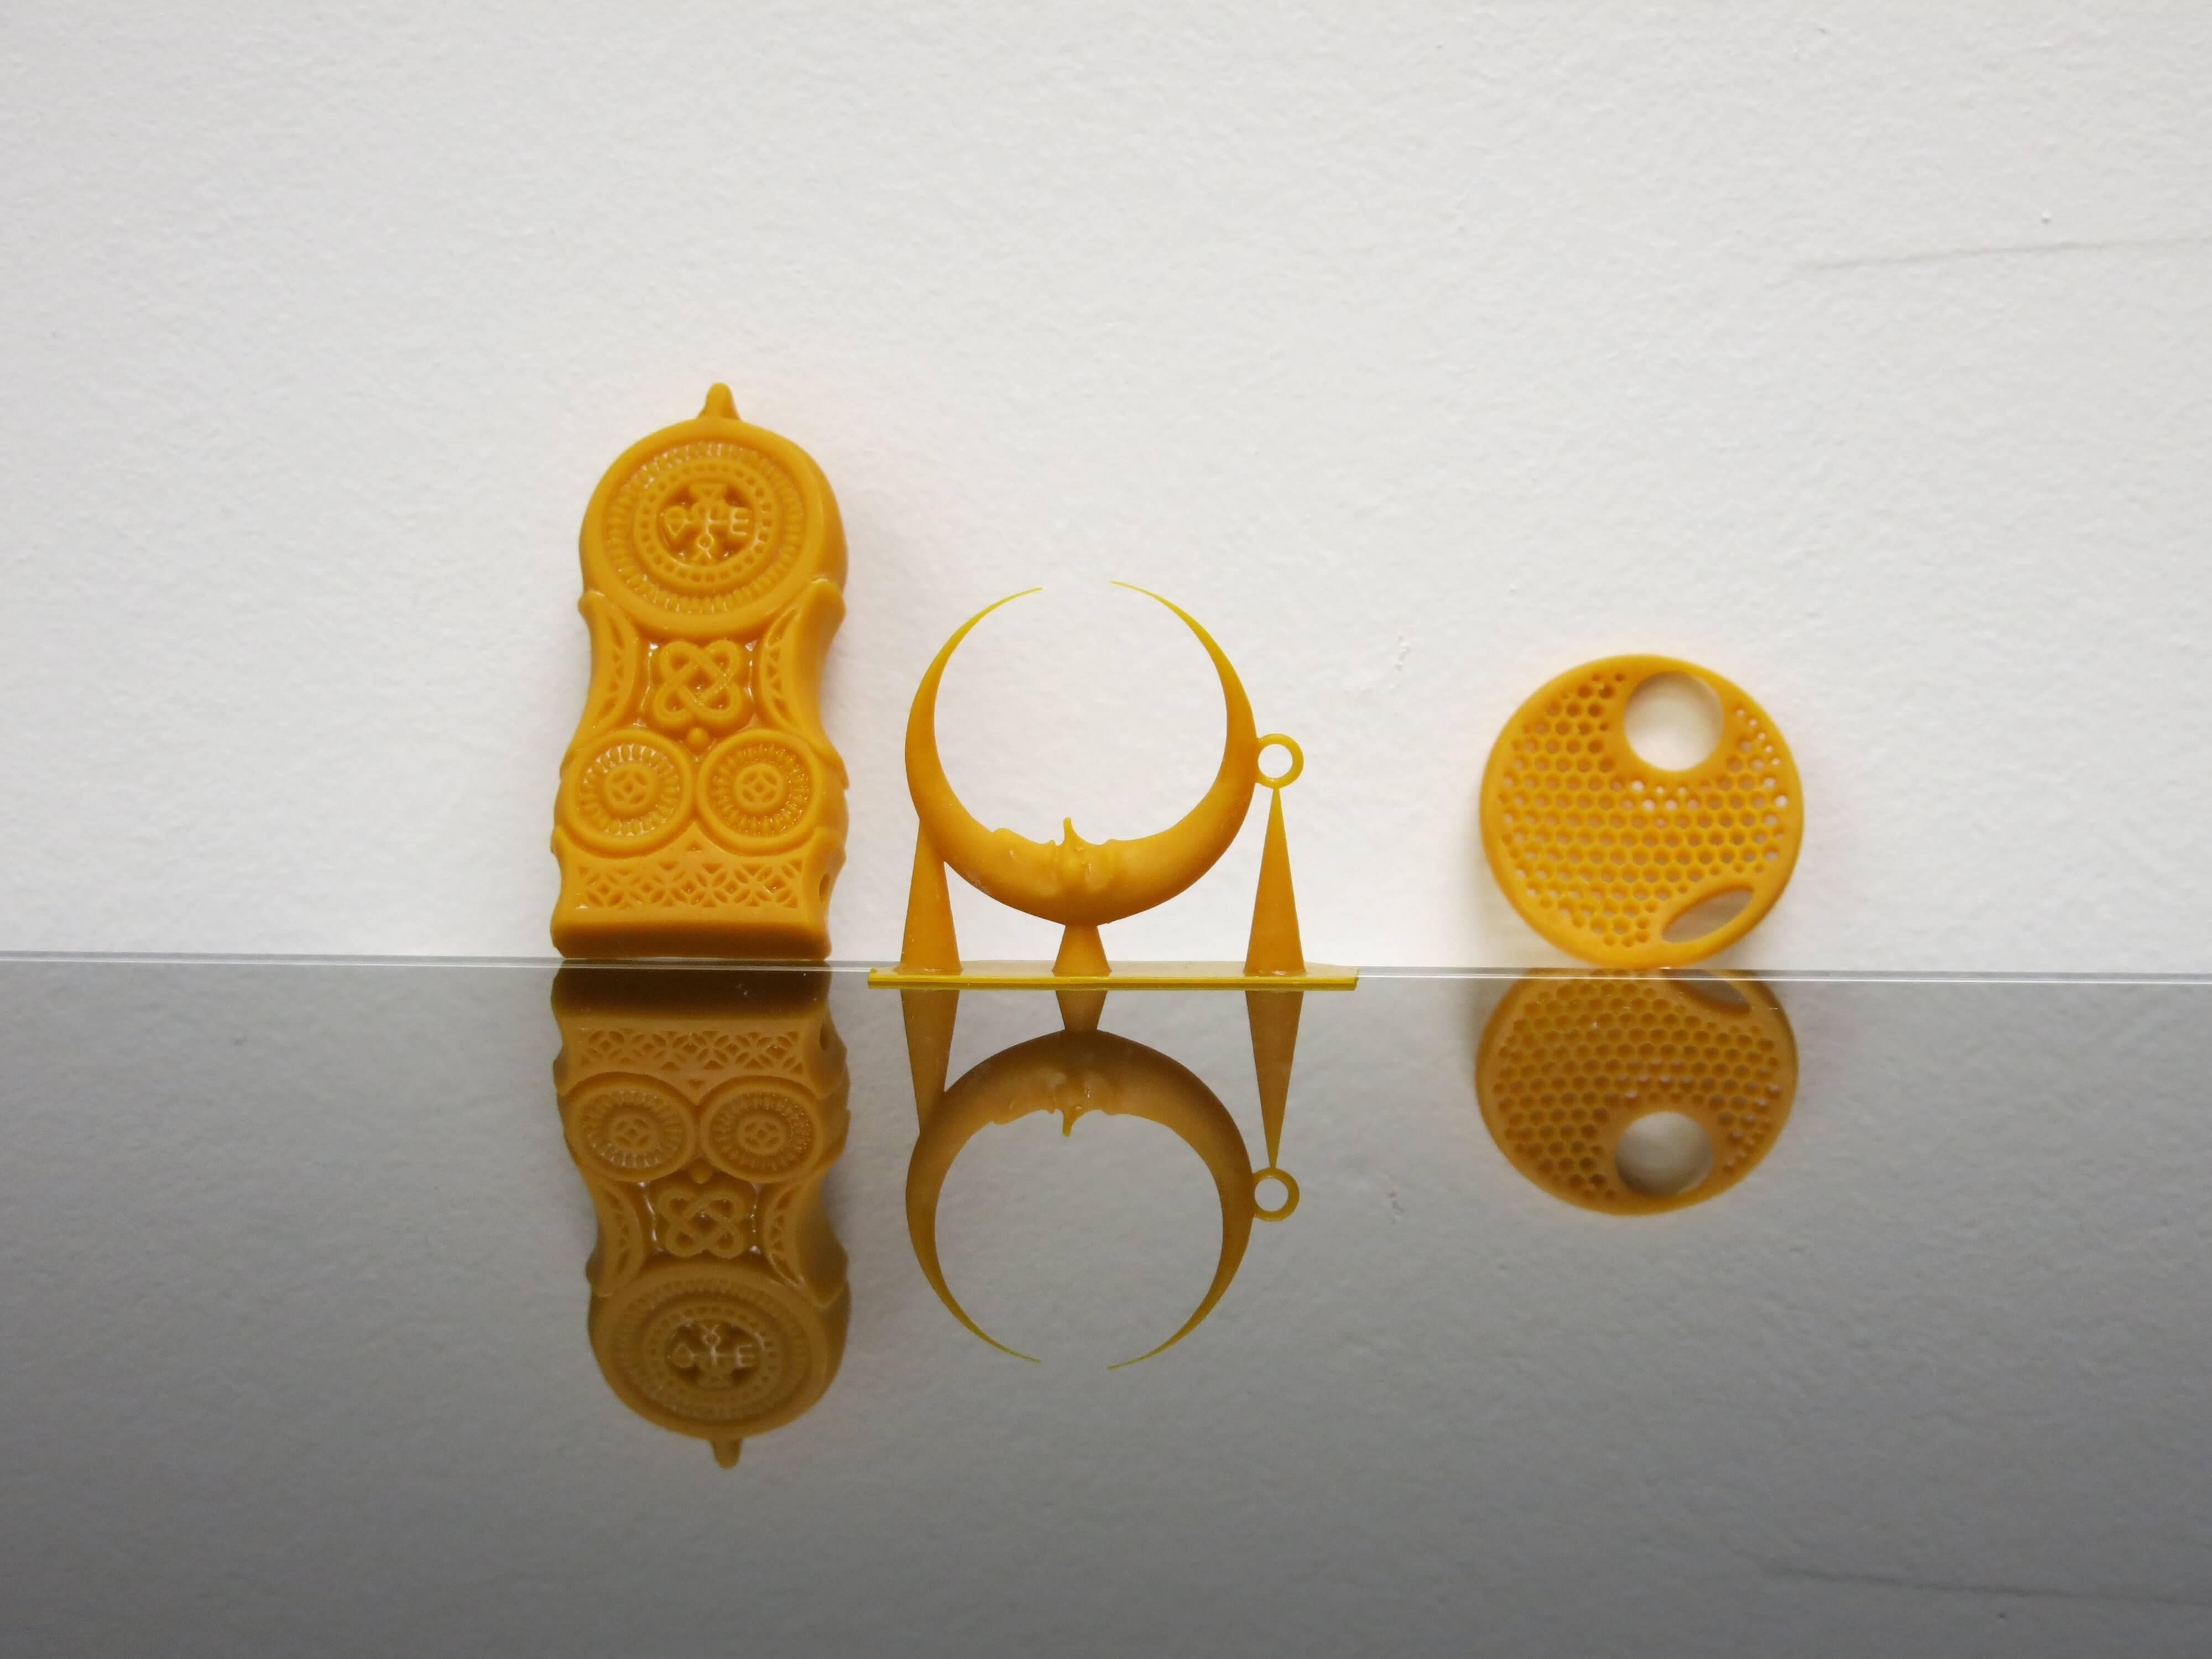 objects-3d-printed-in-wax_2.jpg